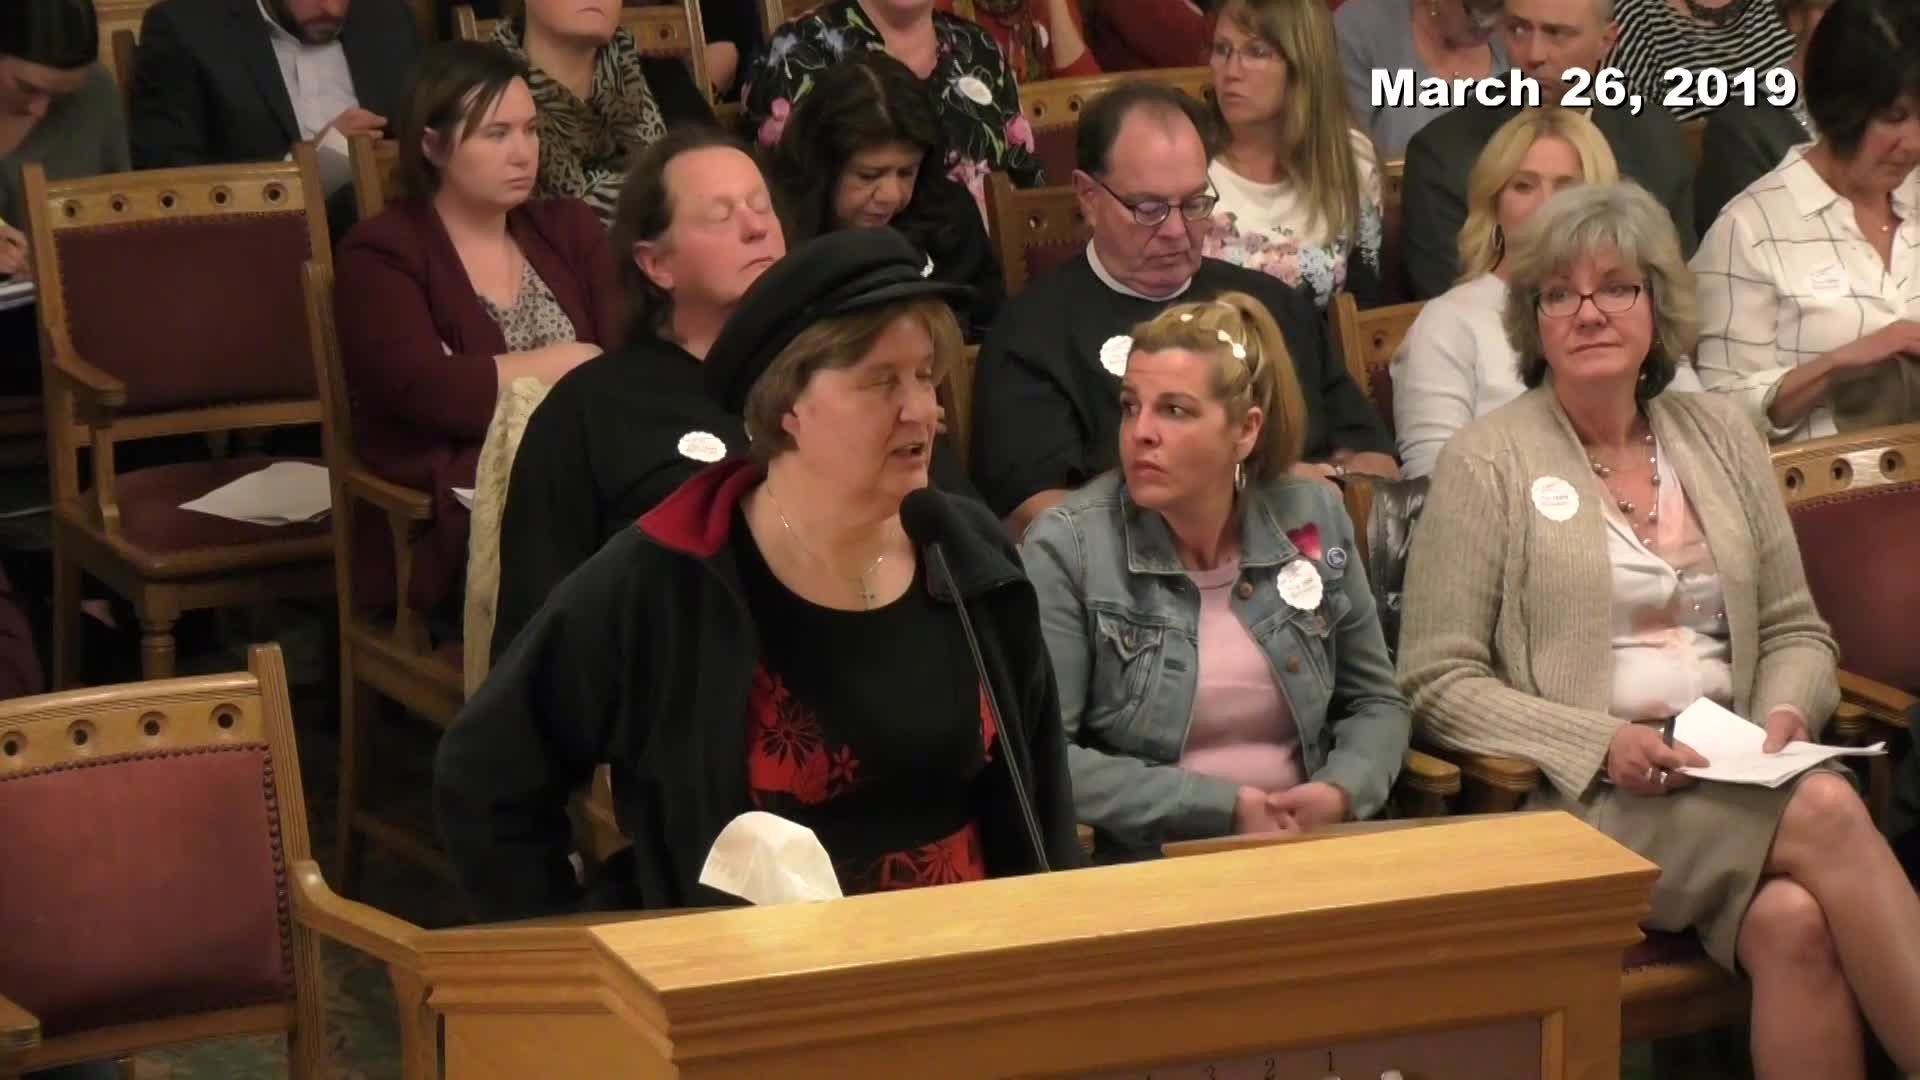 City Council Formal Meeting - 03/26/2019